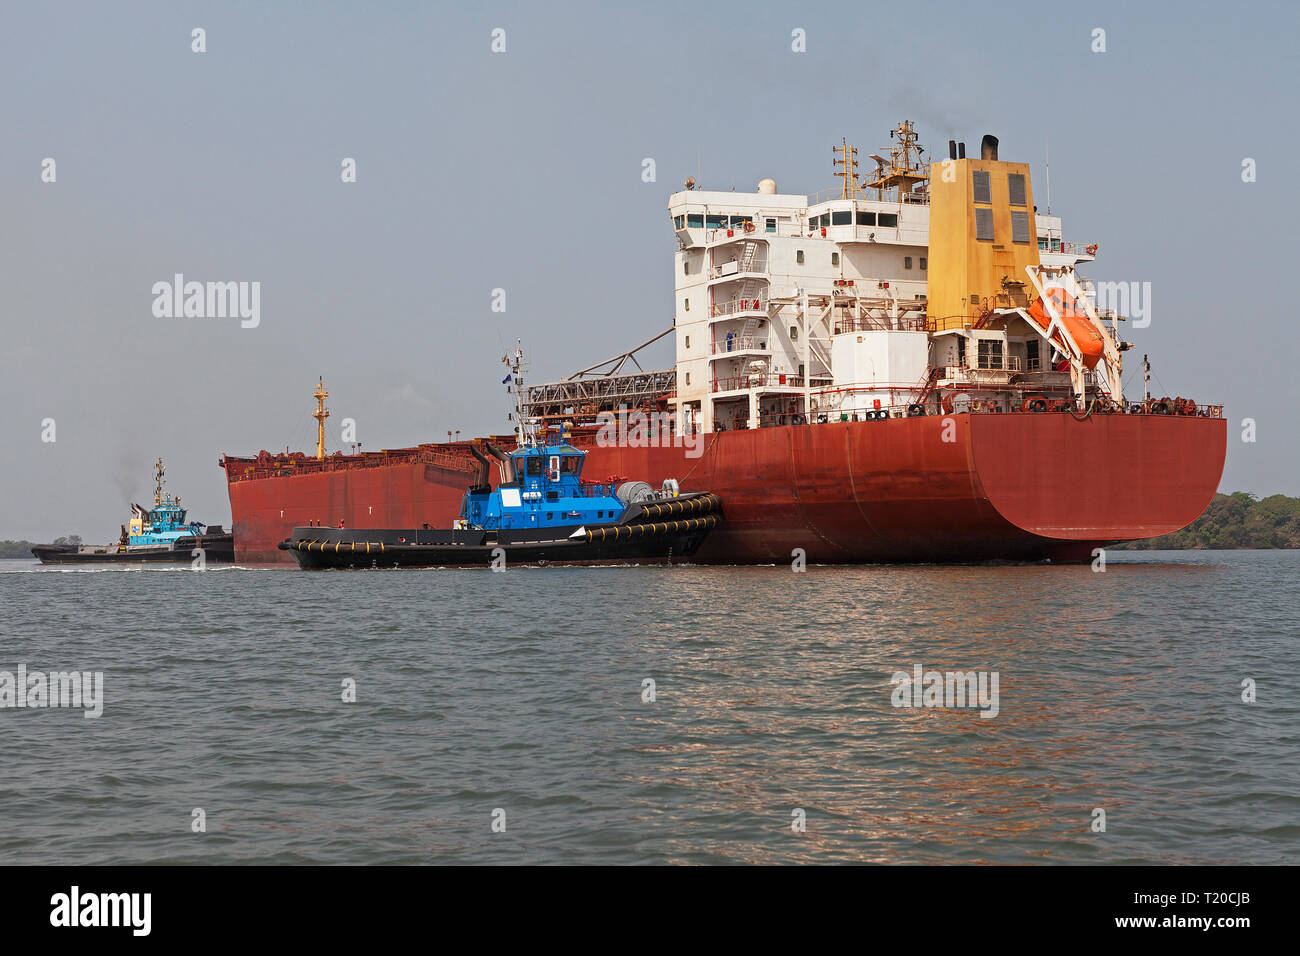 Port operations for managing and transporting iron ore.Tugs manoeuvring and turning transhipment vessel before docking and loading up ore at jetty - Stock Image